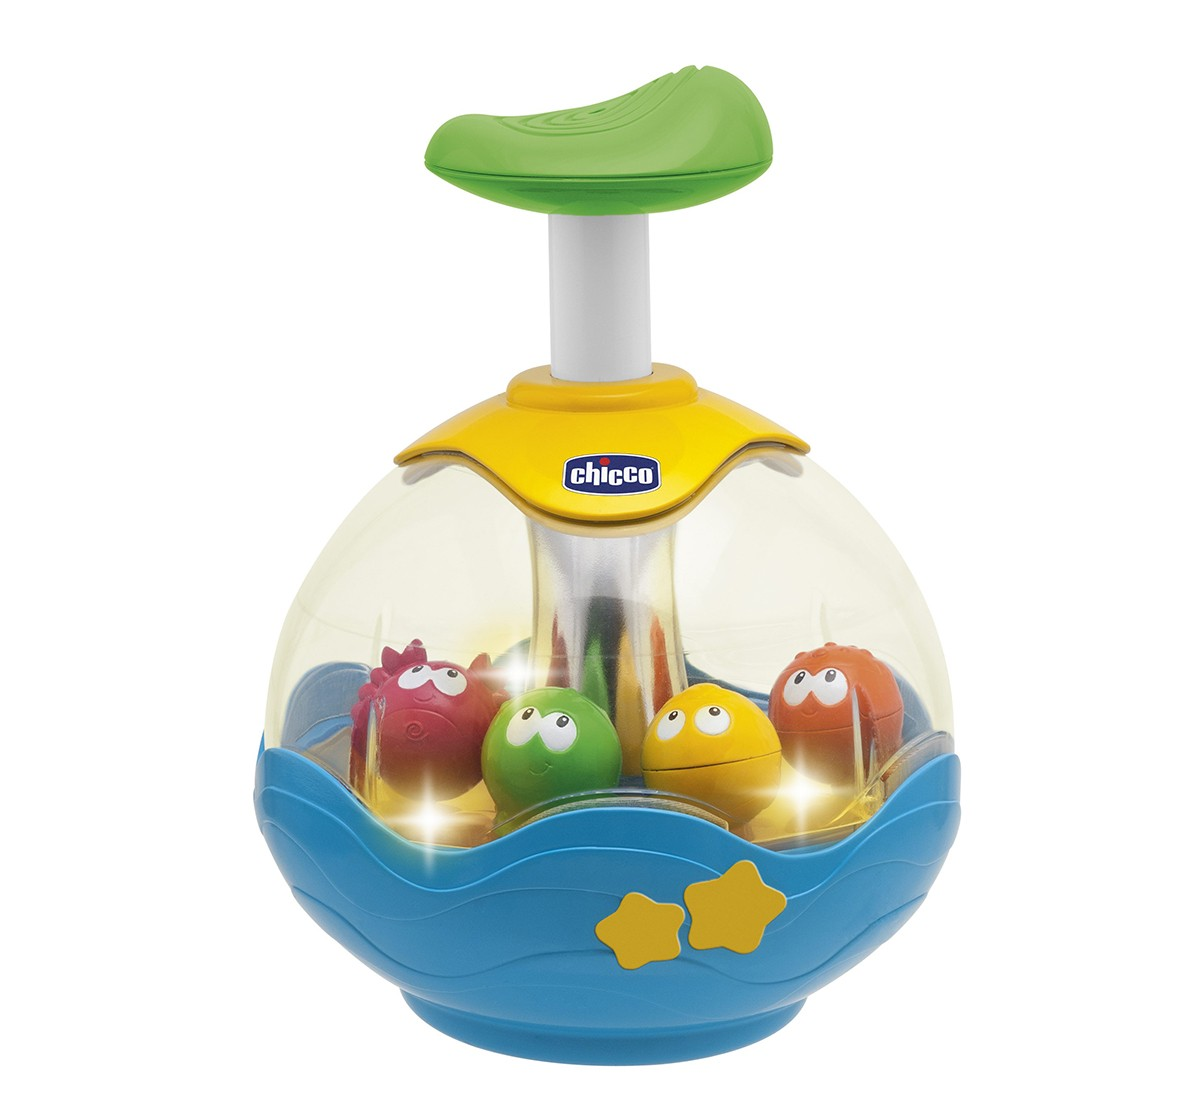 Chicco Aquarium Spinner for Kids age 6M+